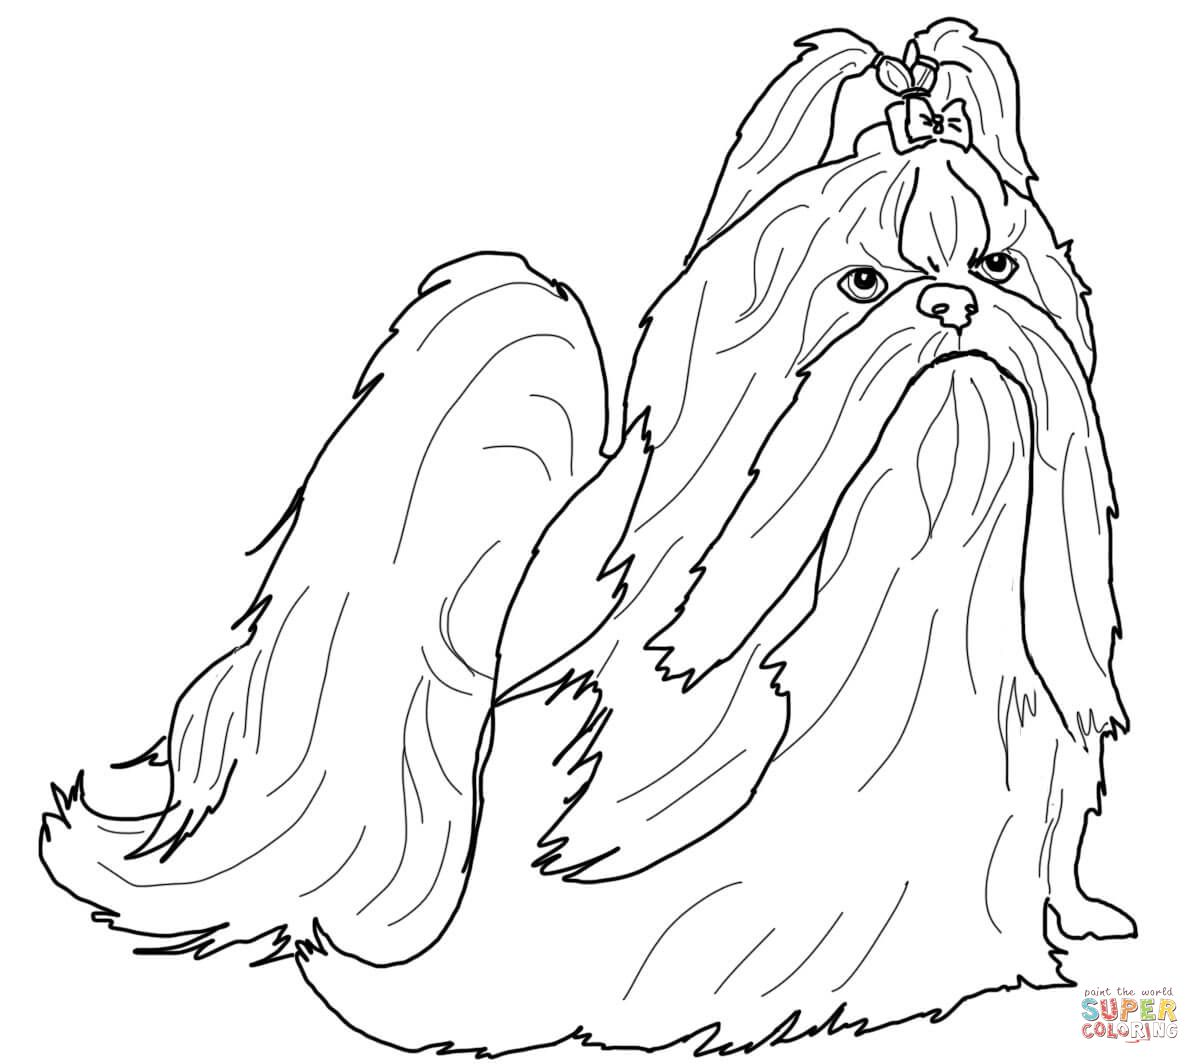 Shih Tzu In Show Coat Horse Coloring Pages Puppy Coloring Pages Dog Coloring Page